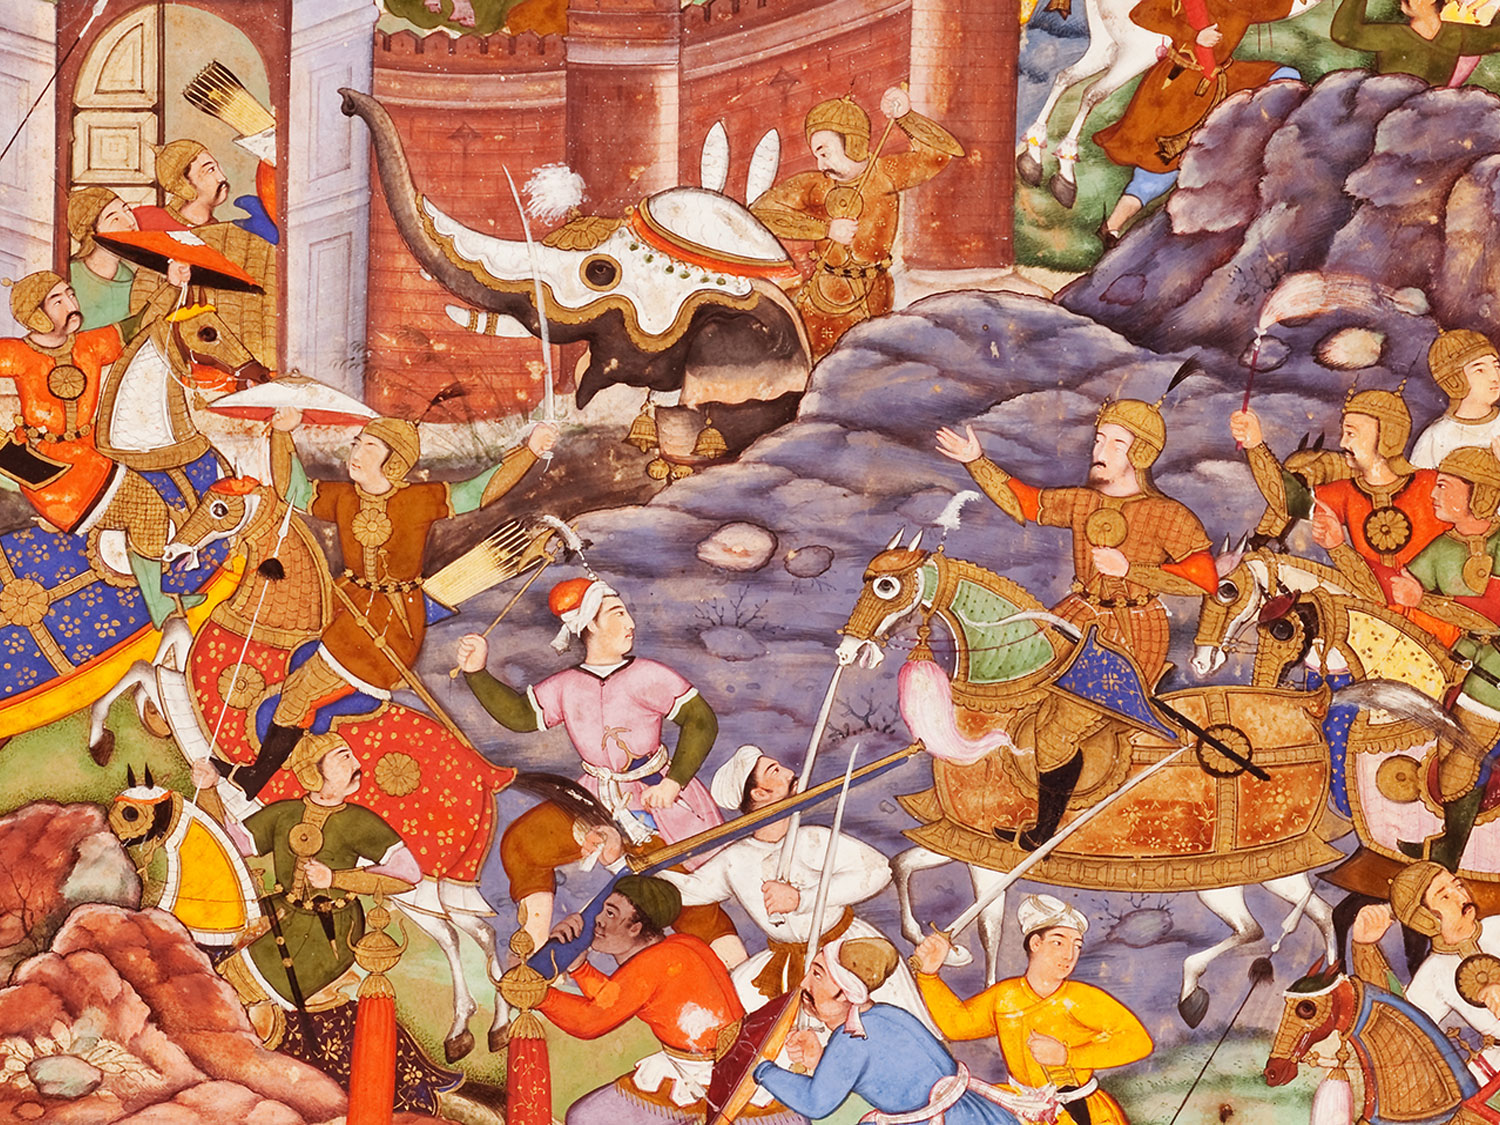 Battle of Machhiwara